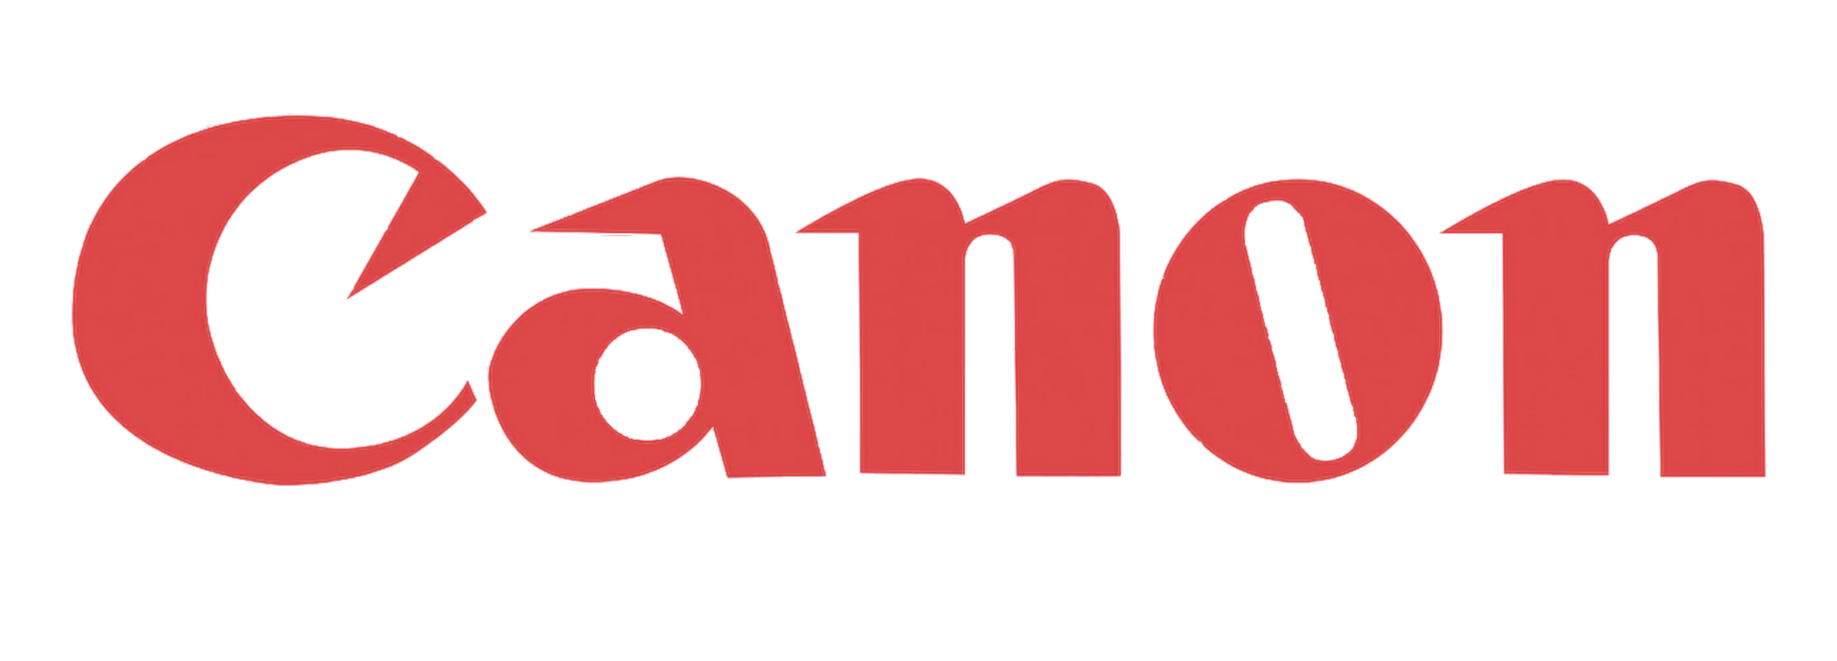 canon png.png